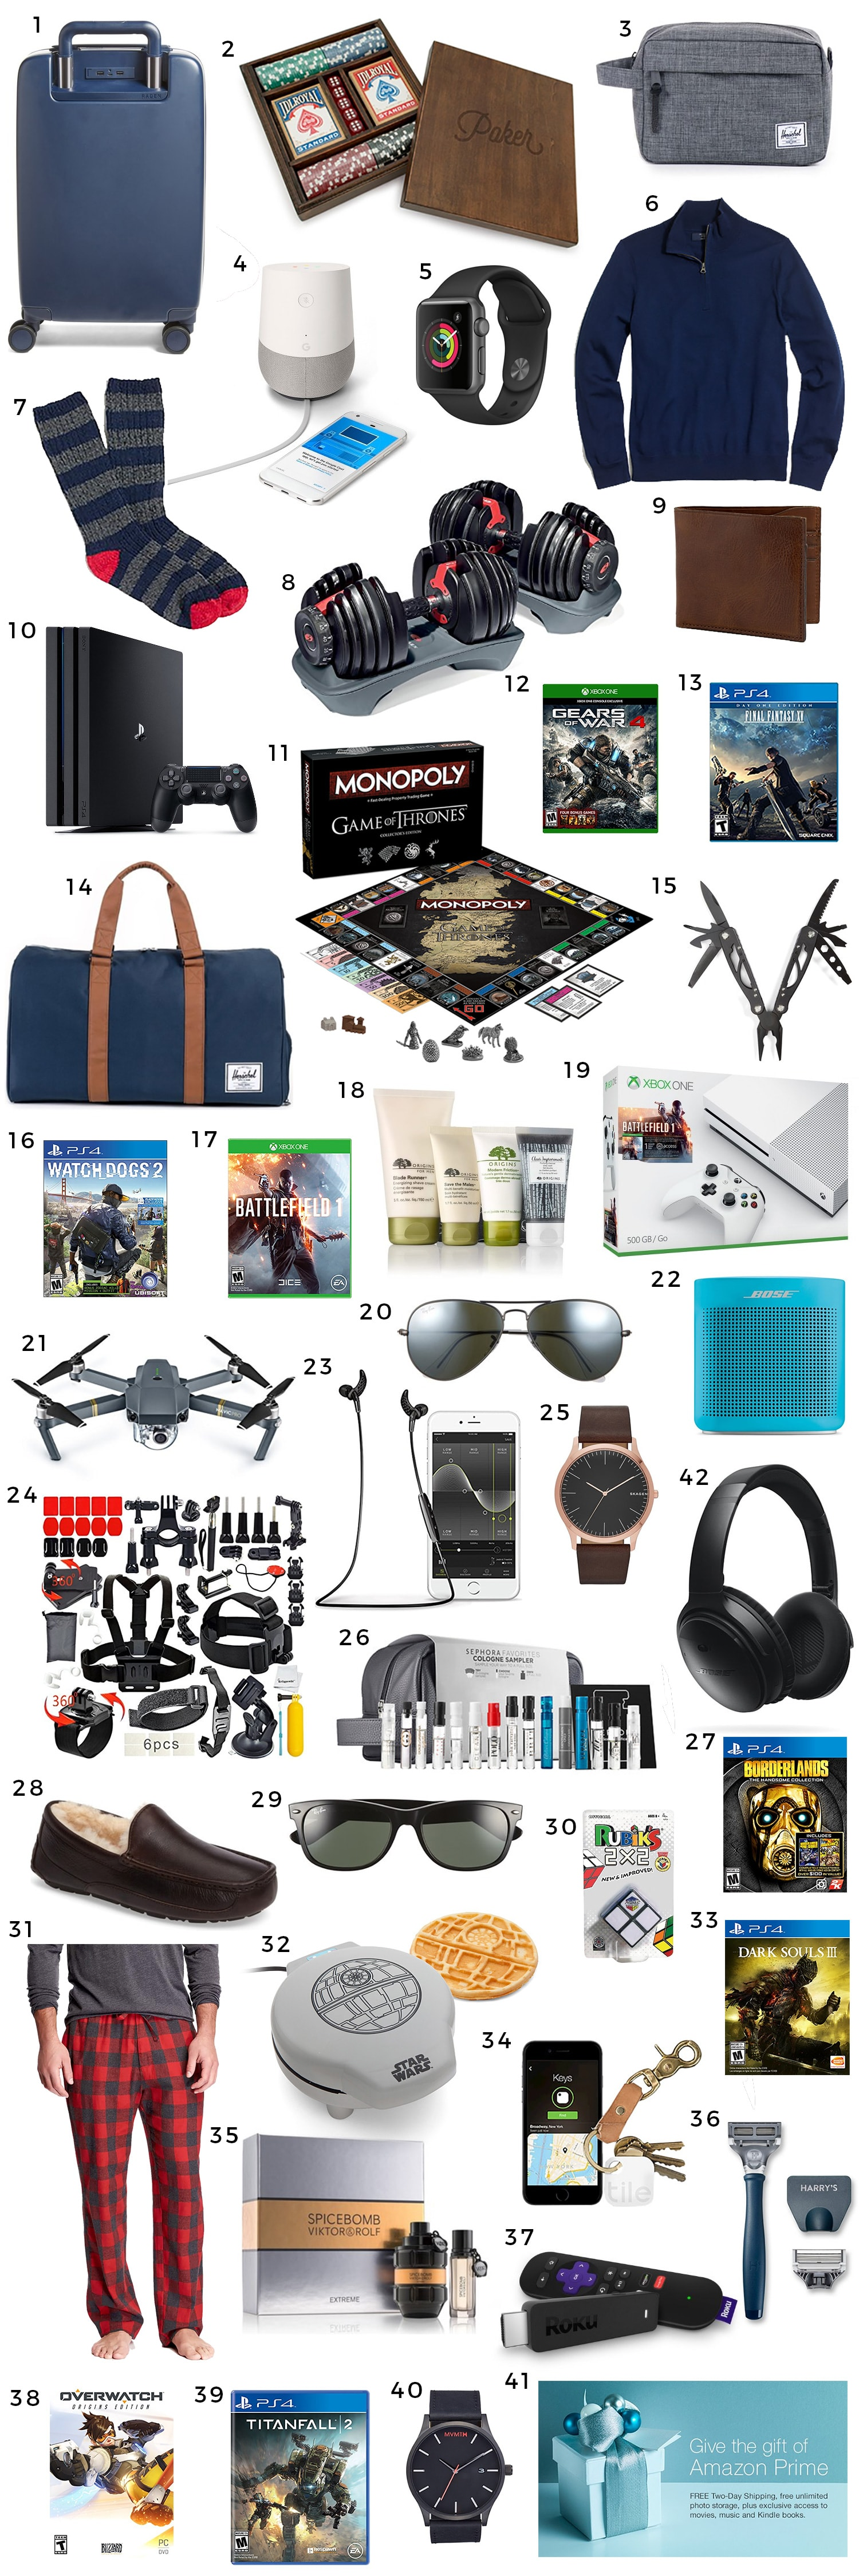 Xmas Gifts For Men Part - 27: ... Christmas Gift Ideas For Men The Ultimate. Download